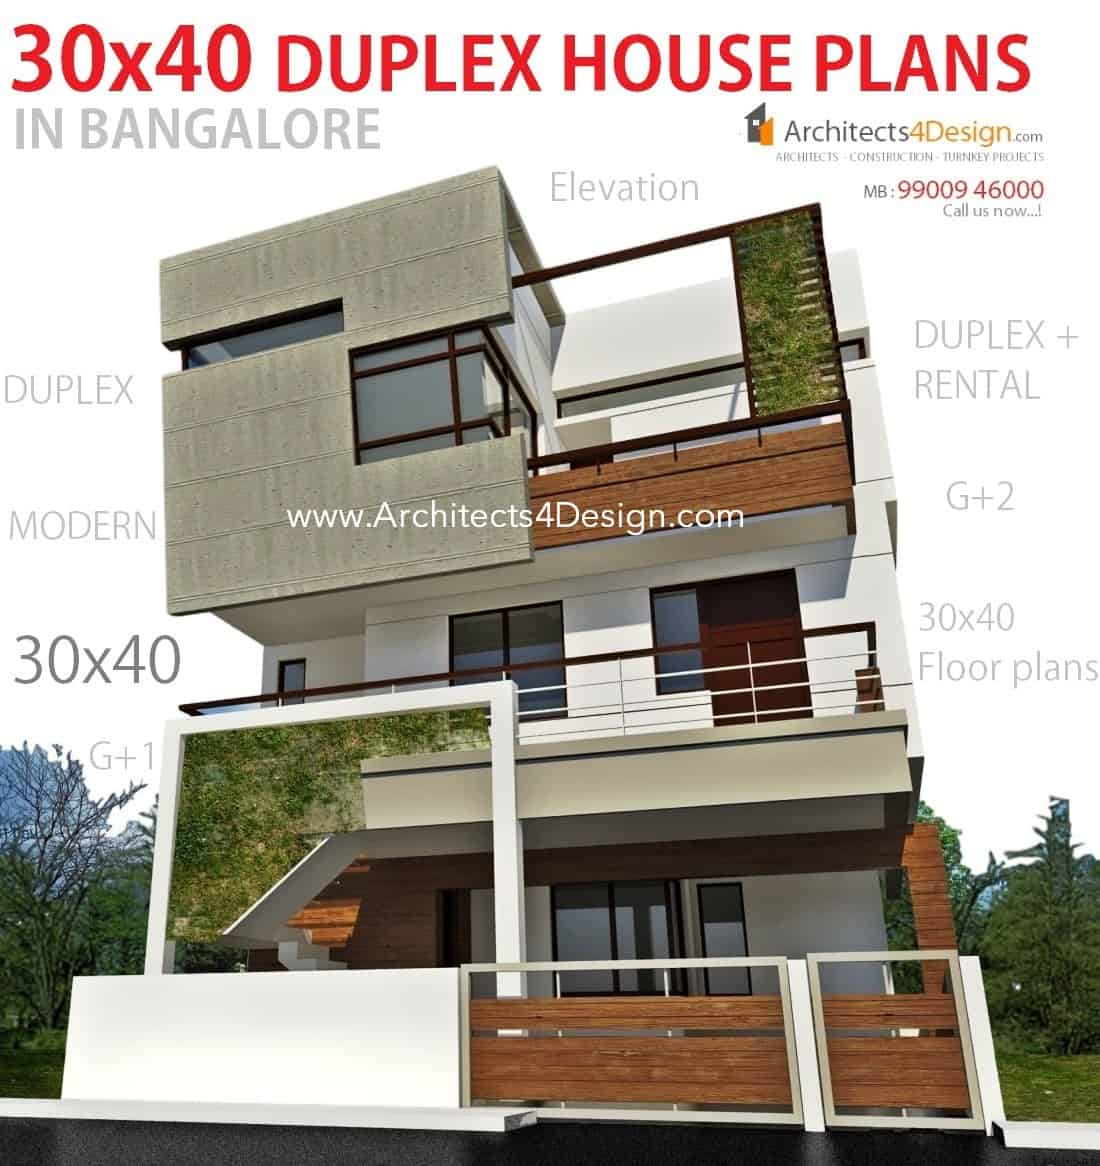 Duplex house plans bangalore